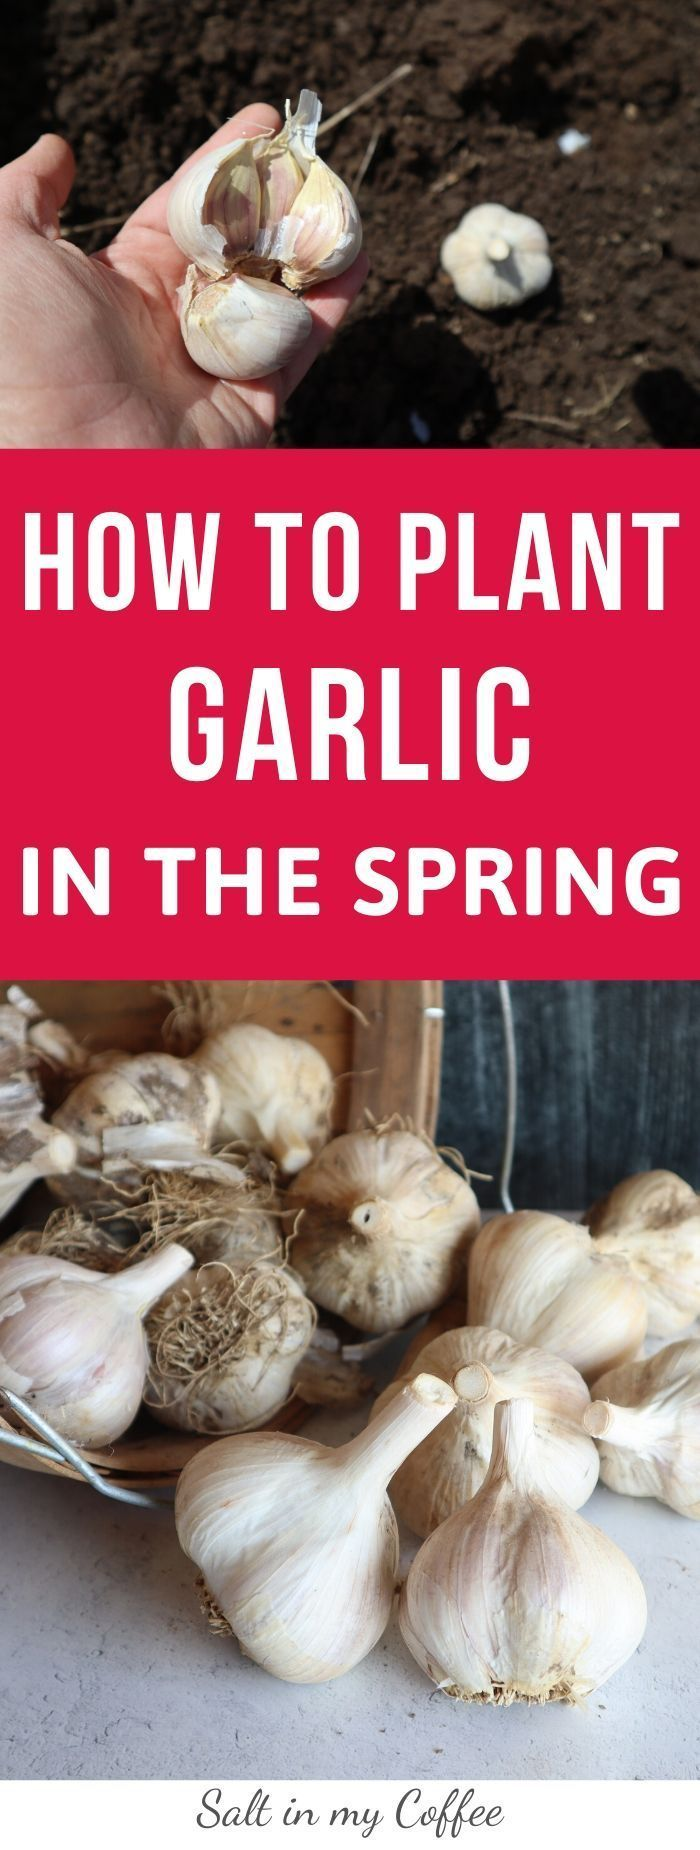 47+ Where to buy garlic for planting ideas